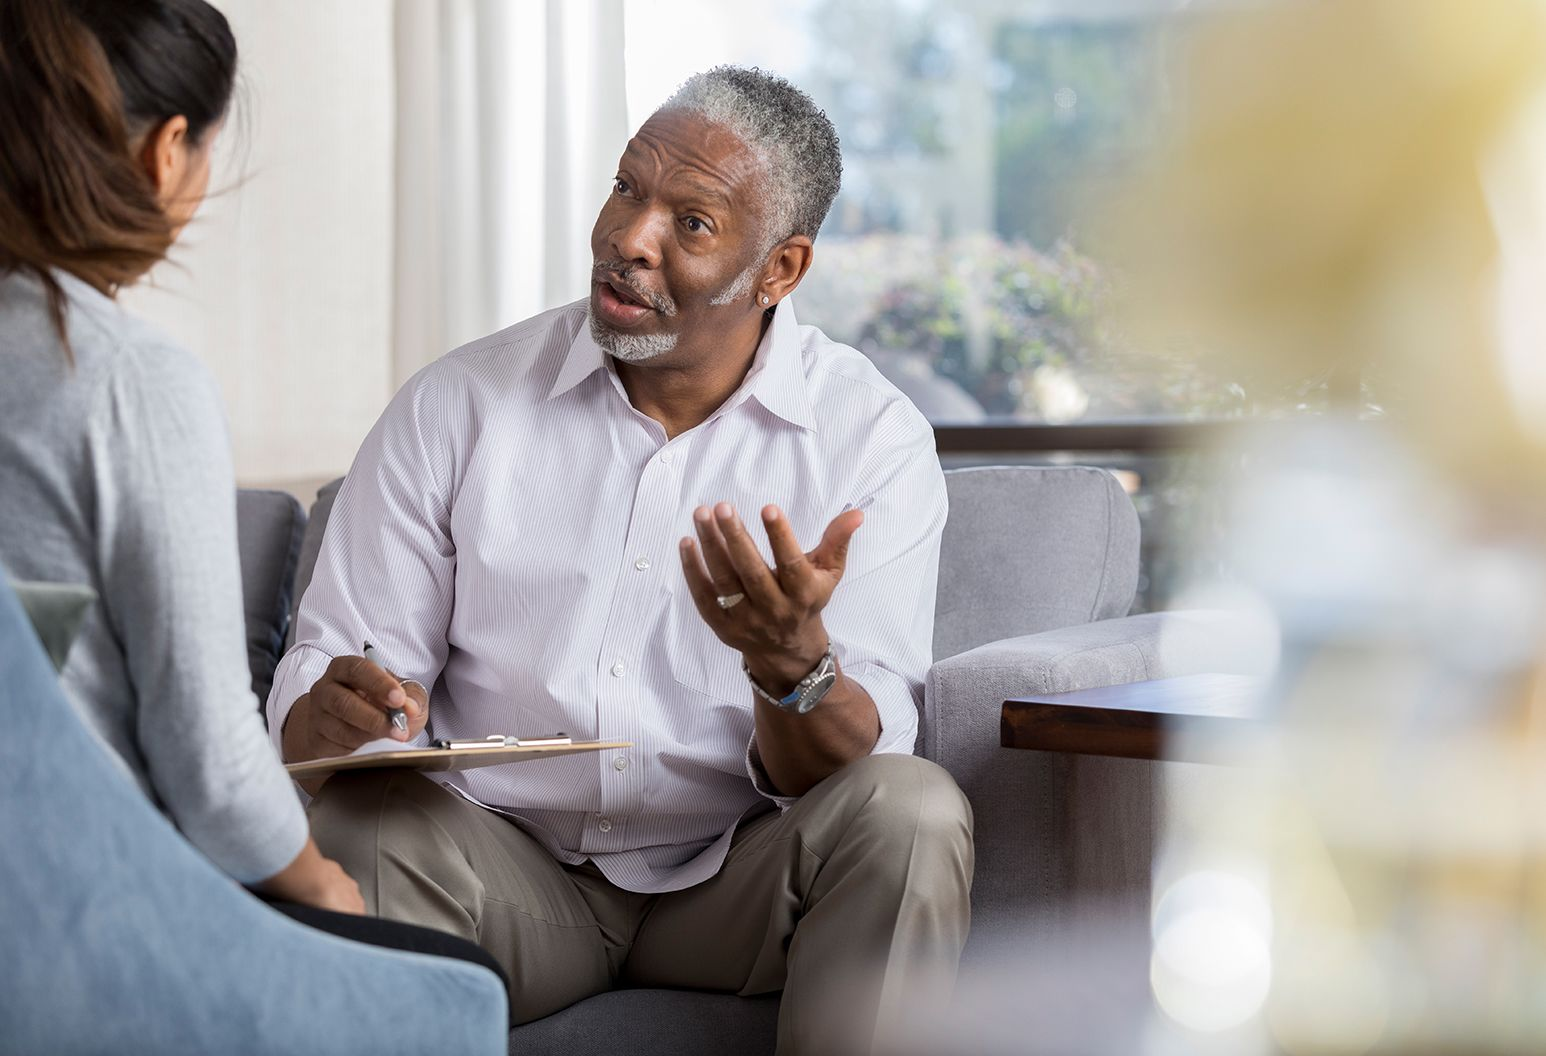 Confident senior African American male counselor gestures as he gives advice to a female patient. The counselor is holding a clipboard.